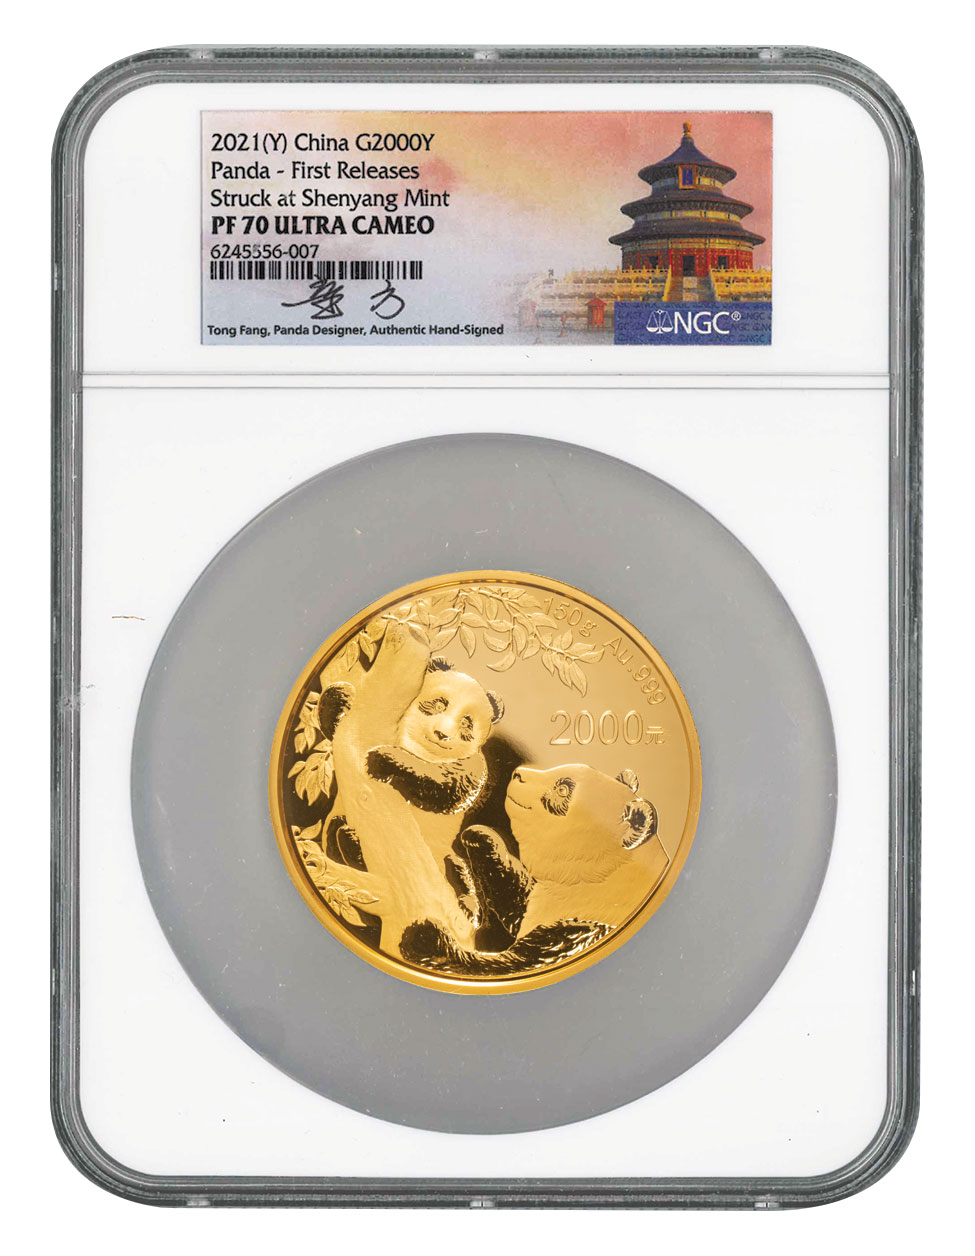 2021 China 150 g Gold Panda Proof ¥2,000 Coin Scarce and Unique Coin Division NGC PF70 UC FR Tong Signed Label